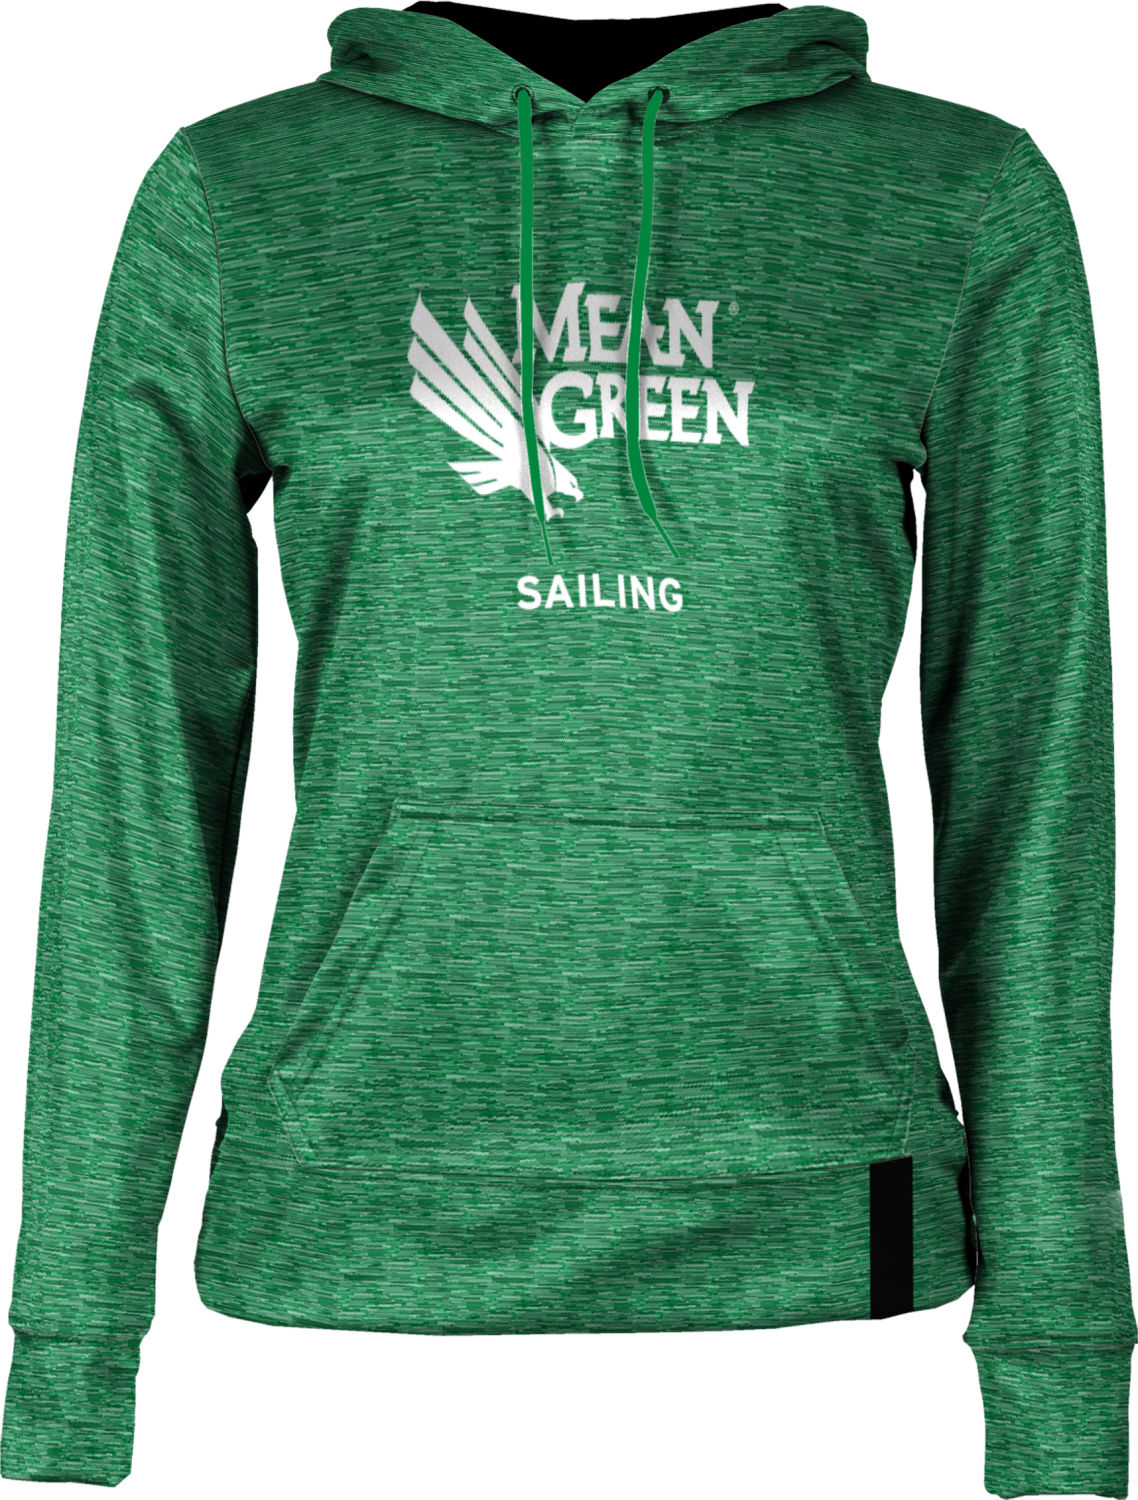 Girl's ProSphere Sublimated Hoodie - Sailing